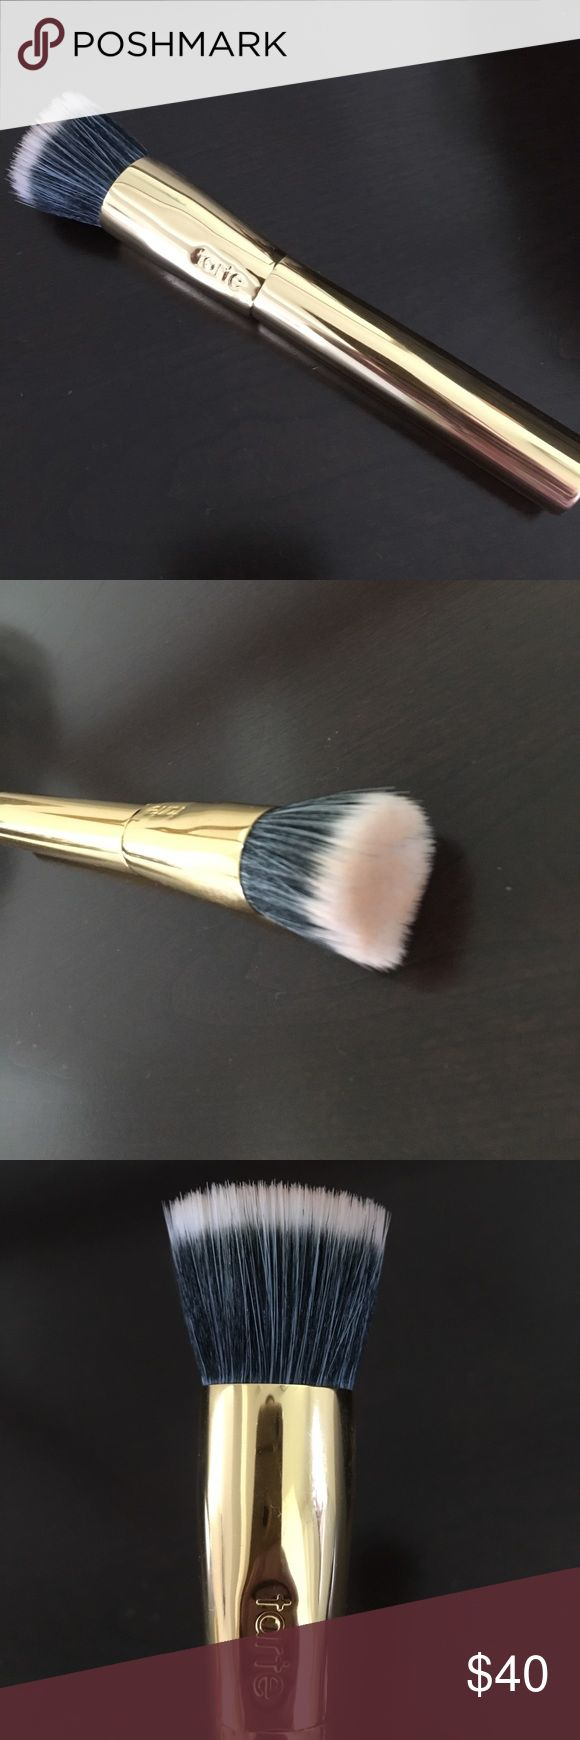 Tarte duo fiber brush Used once. No trades. Gold LE brush Sephora Makeup Brushes & Tools